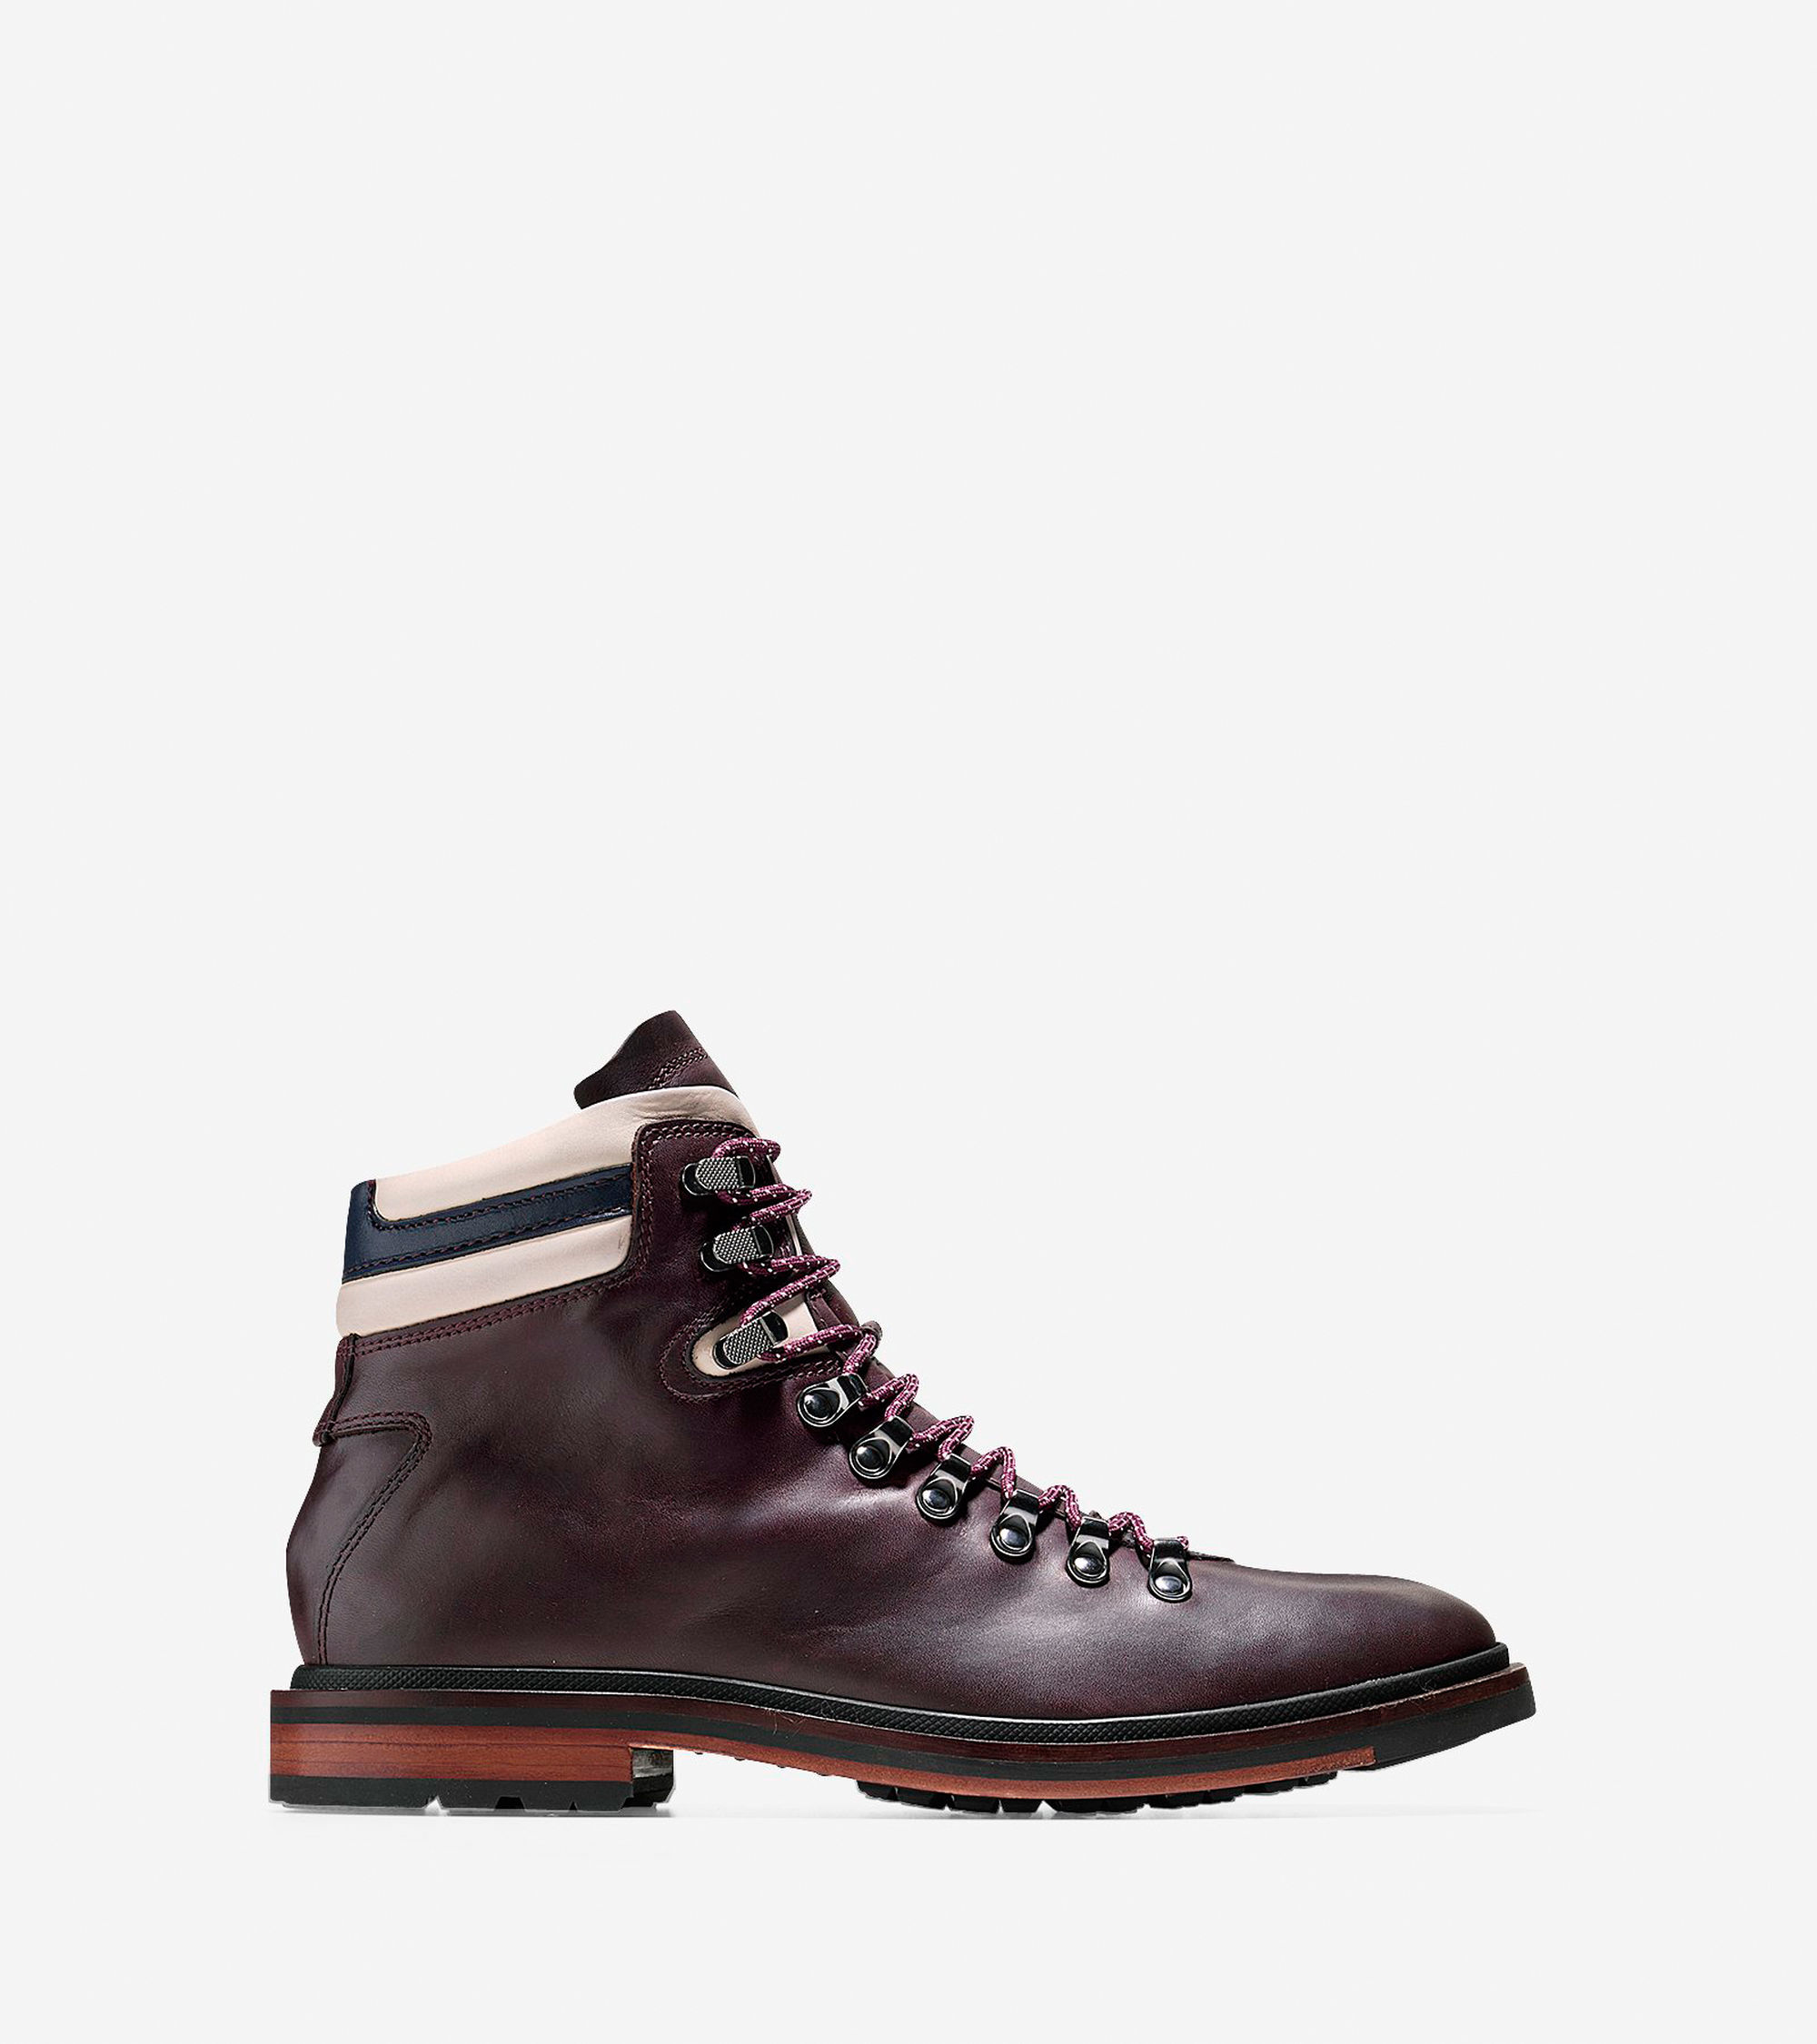 Cole haan Cranston Water-Resistant Hiking-Inspired Boots ...